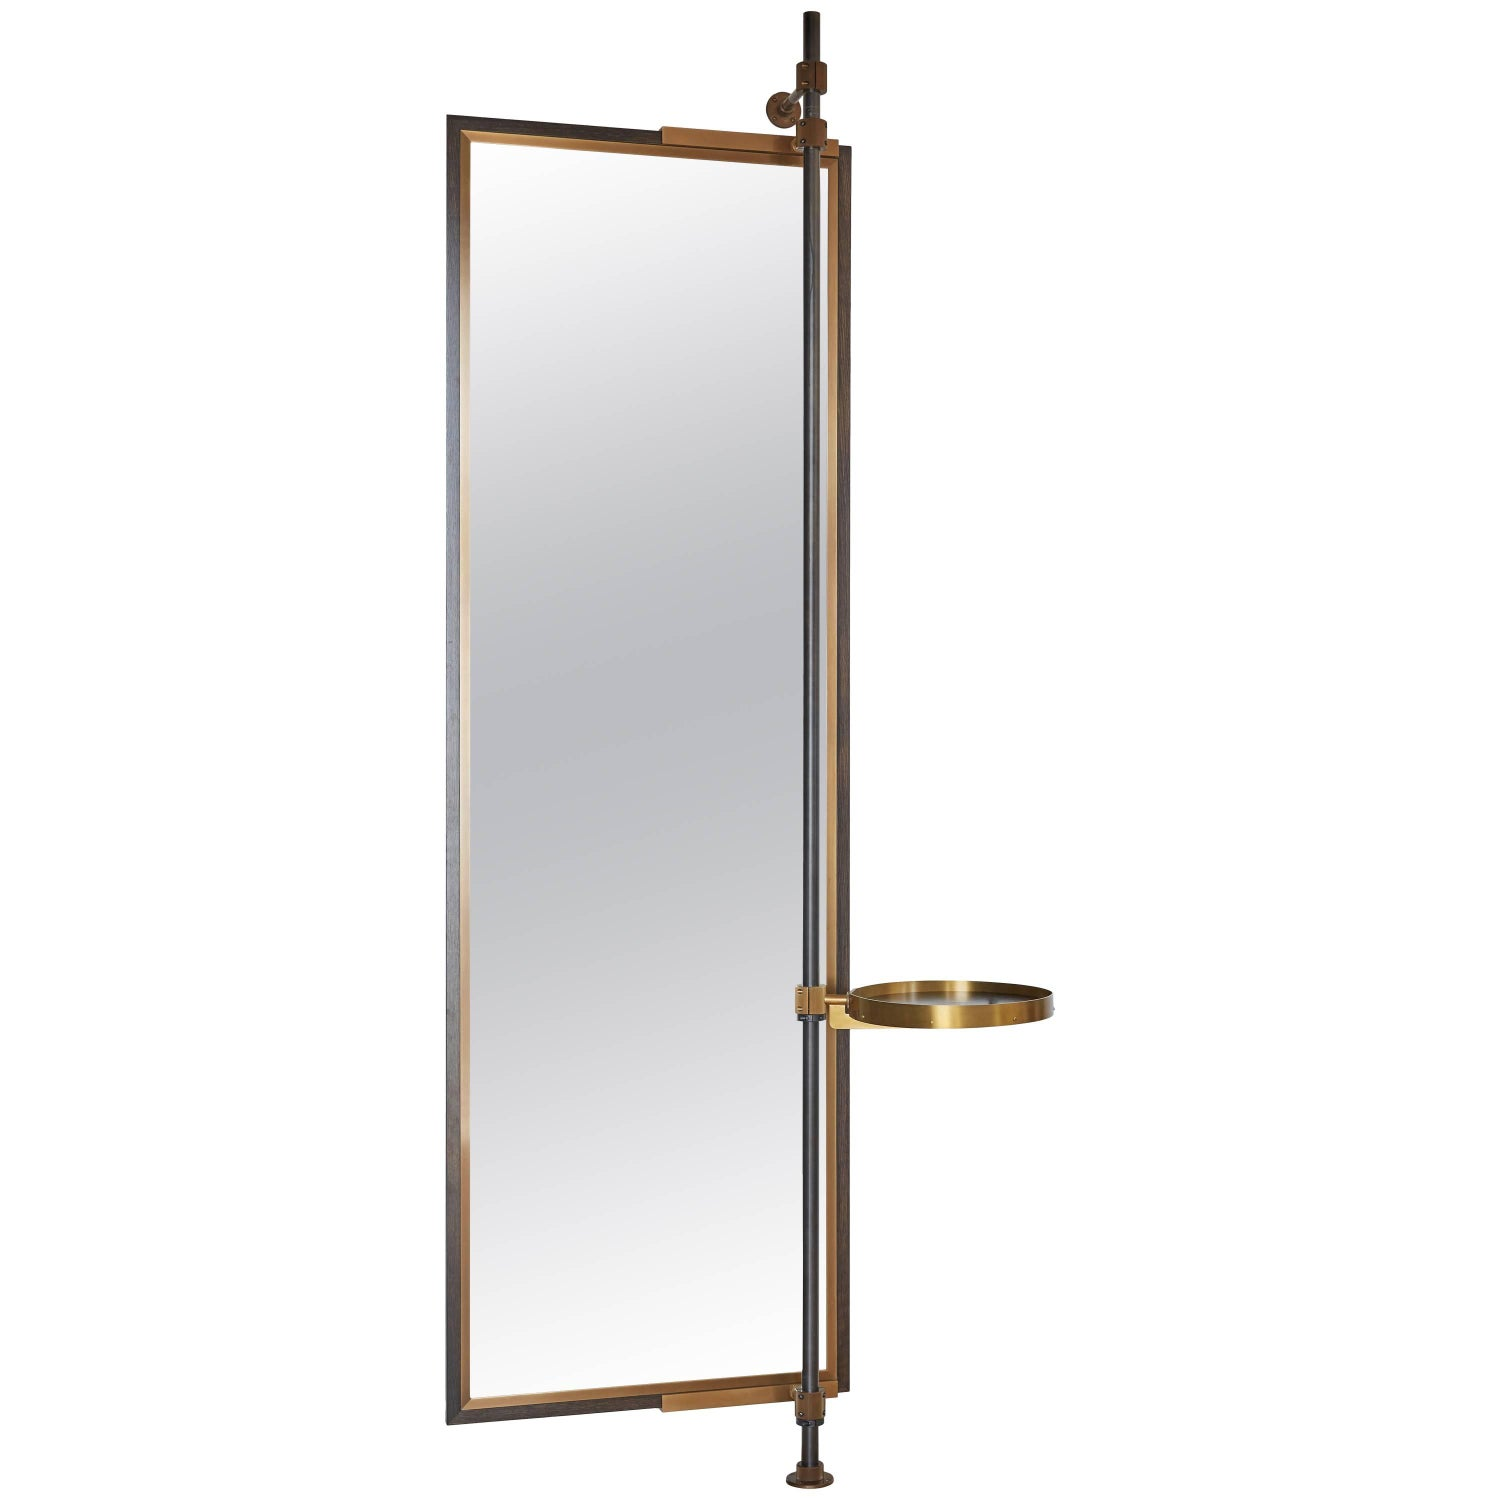 Antique floor mirrors and full-length mirrors For Sale in ...